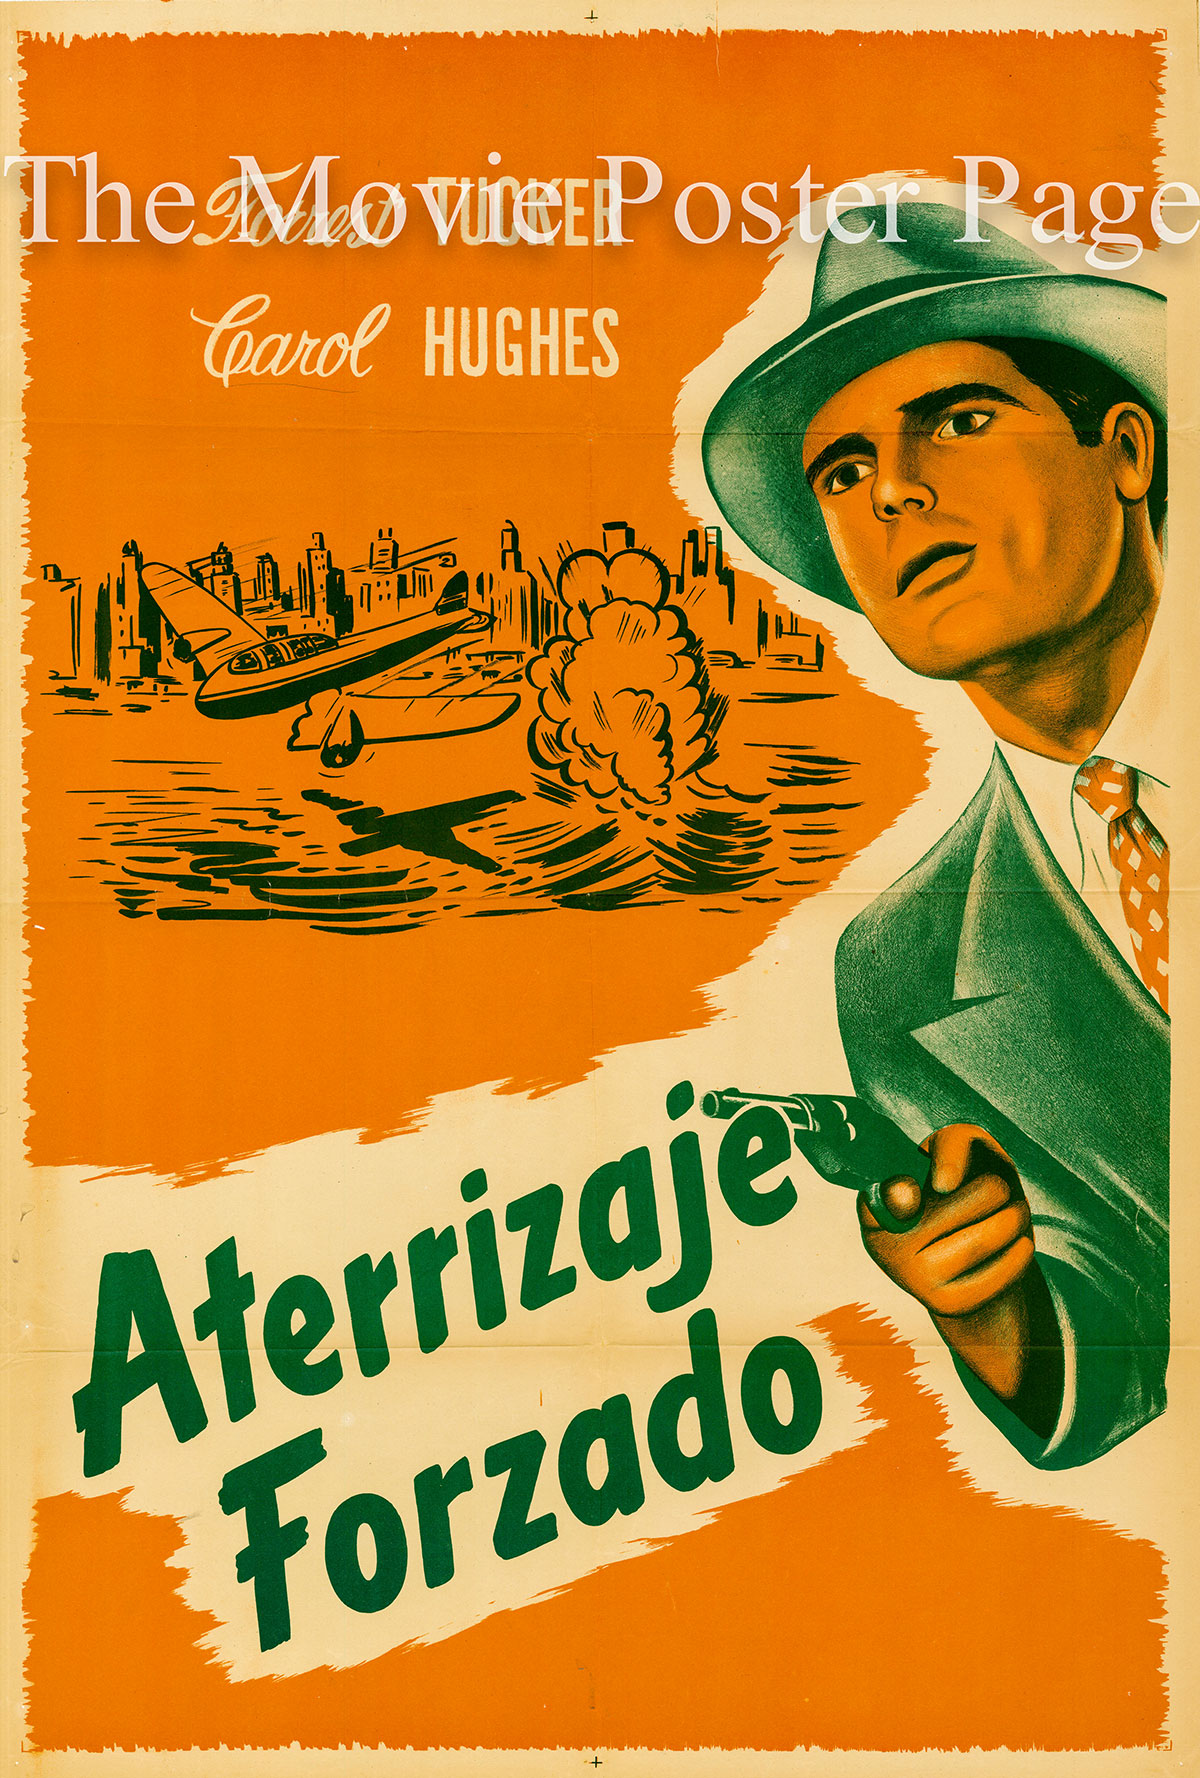 Pictured is an Argentine one-sheet poster for the 1941 William Beaudine film Emergency Landing starring Forrest Tucker as Jerry Barton.